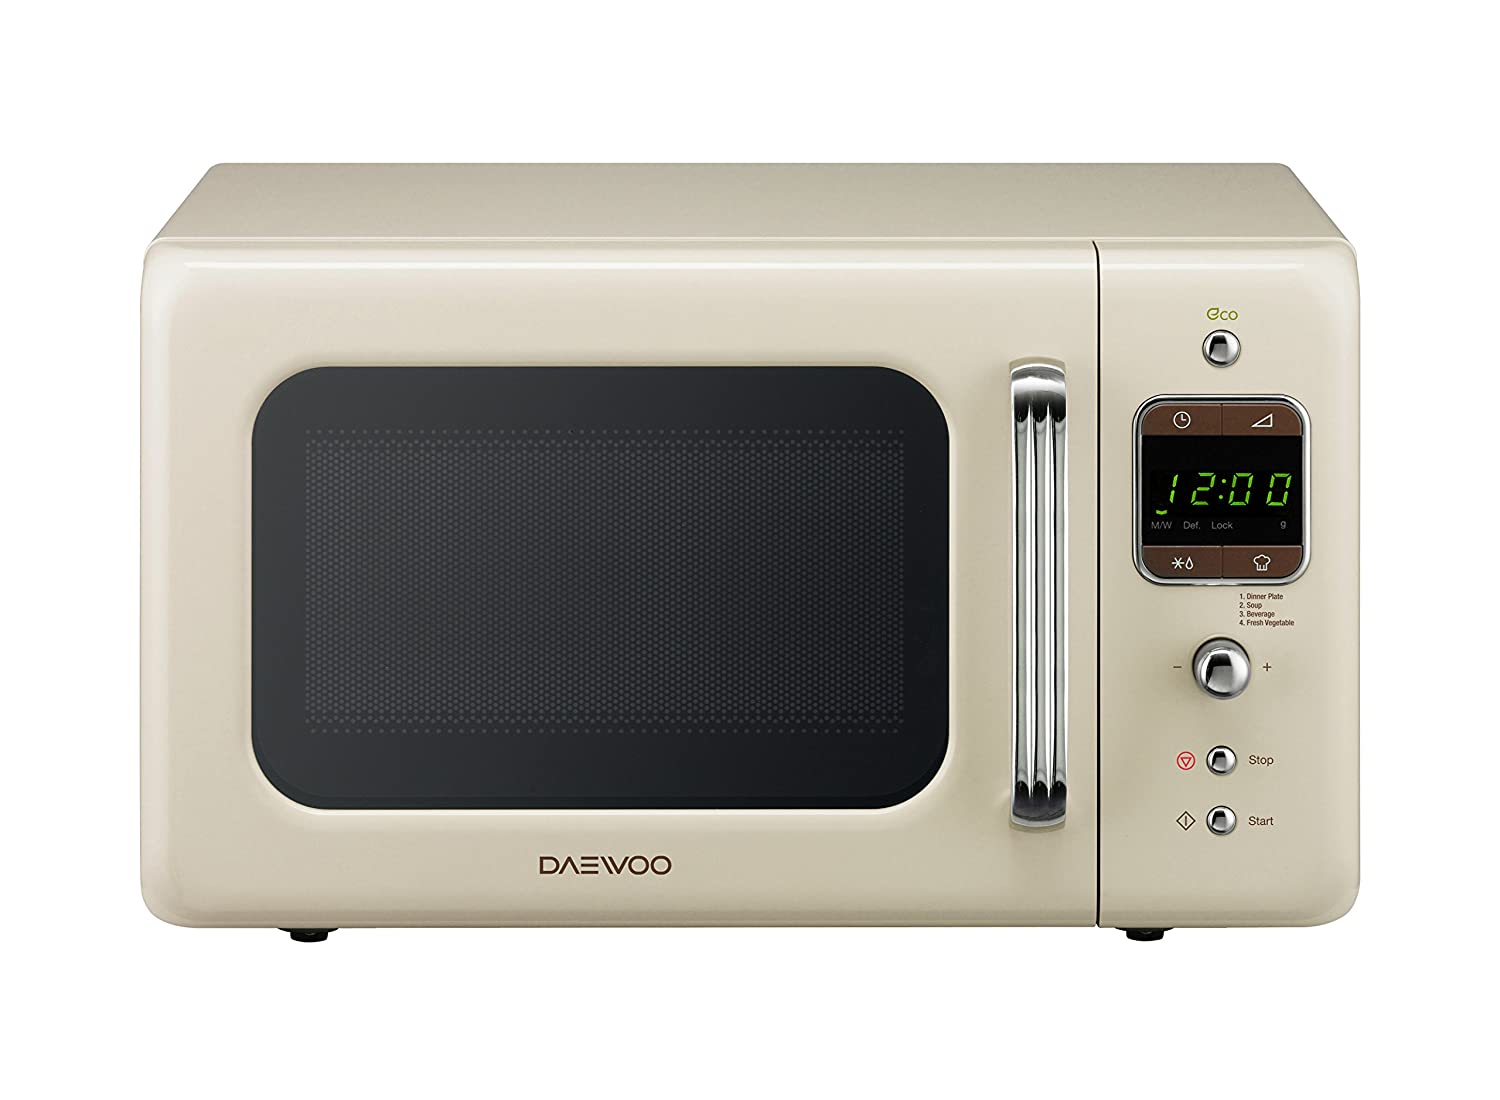 cmw microwave ovens cuisinart combo online review toaster oven